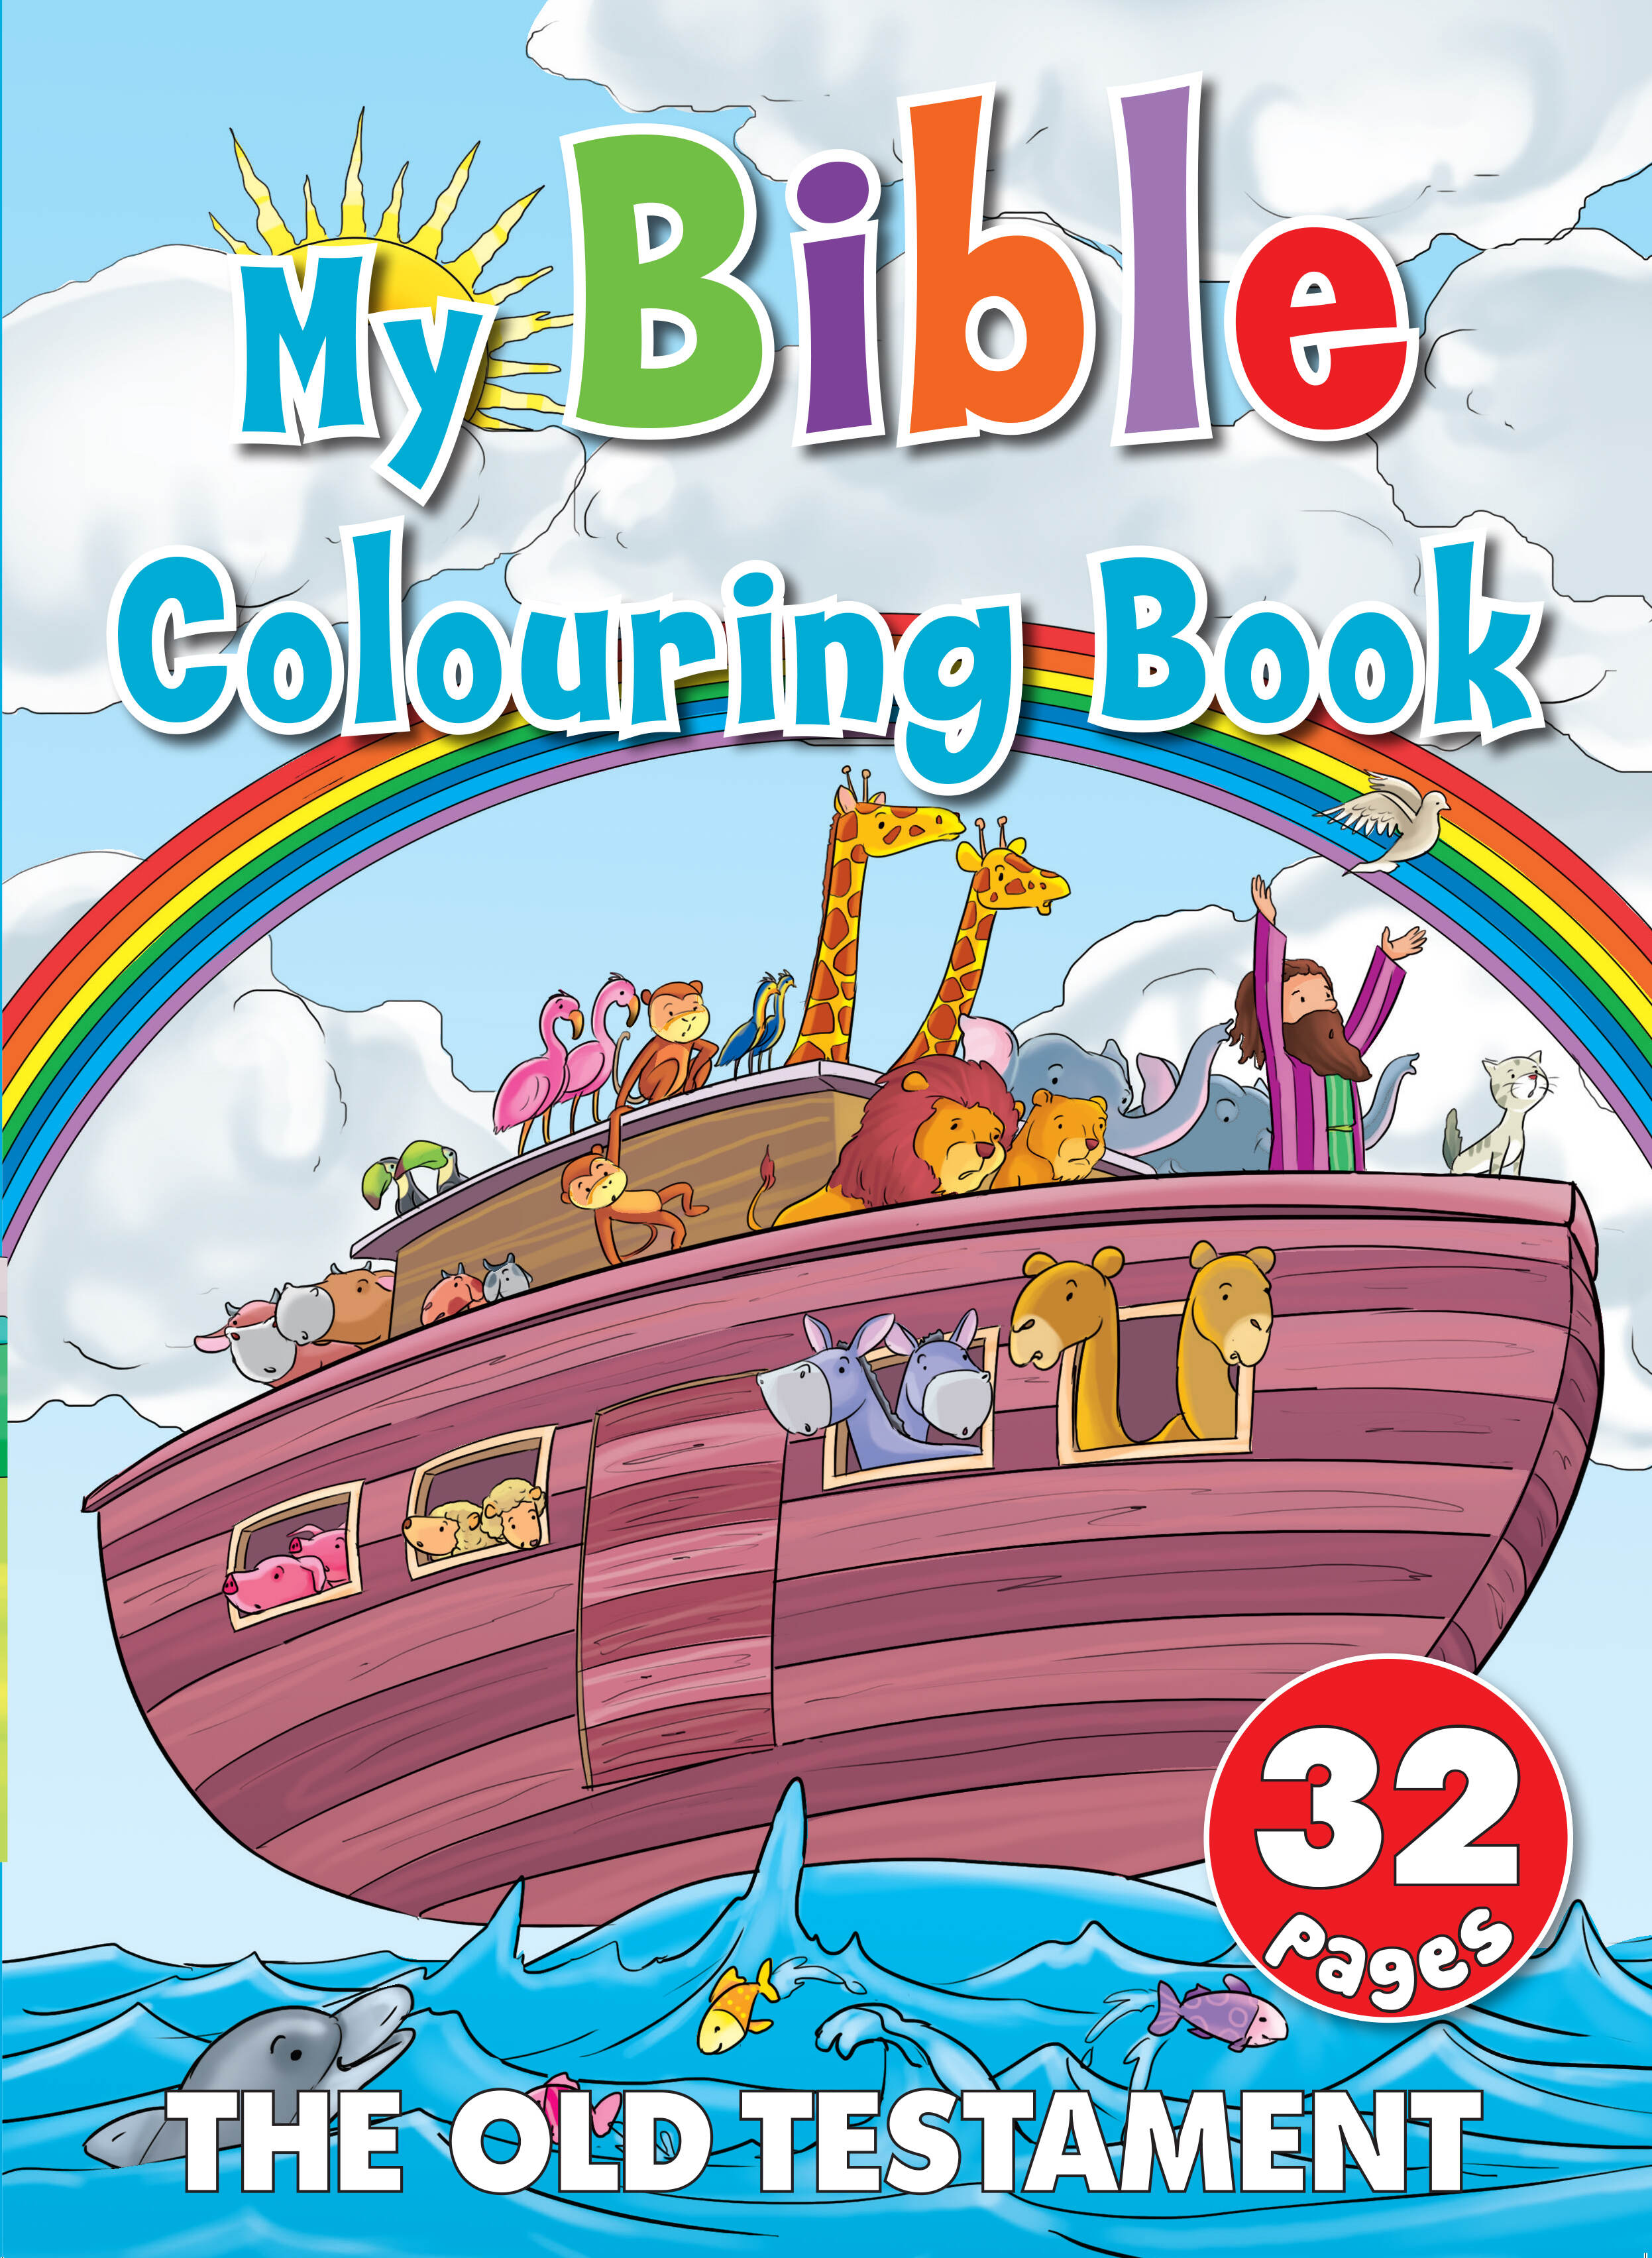 My Bible Colouring Book The Old Testament 32 Page